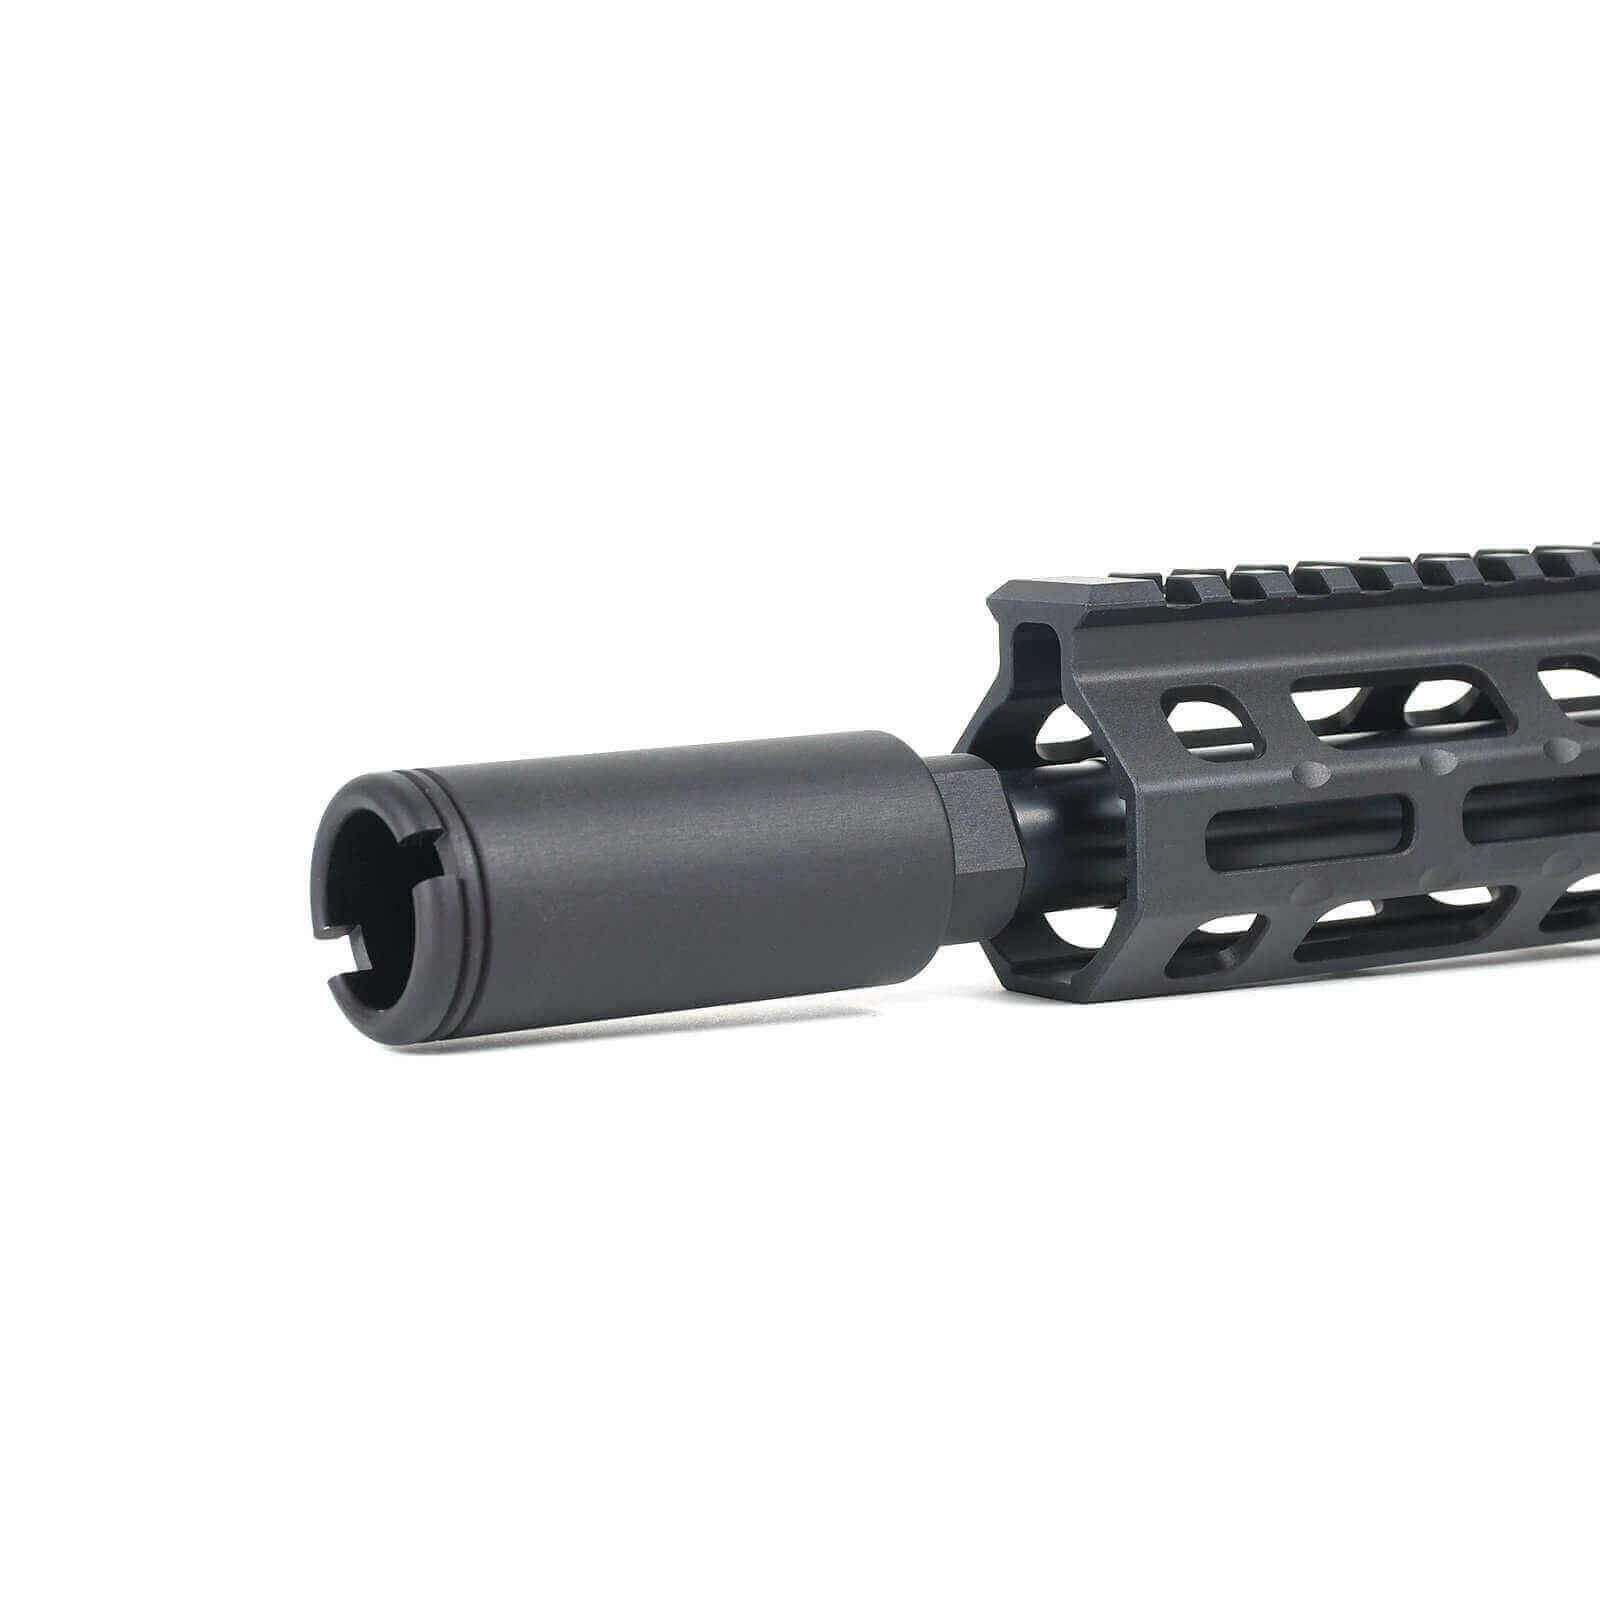 AT3™ FF-ML 16 Inch  300 BLK Complete Upper -  300 AAC Blackout 16 Inch  Ballistic Advantage Barrel - 15